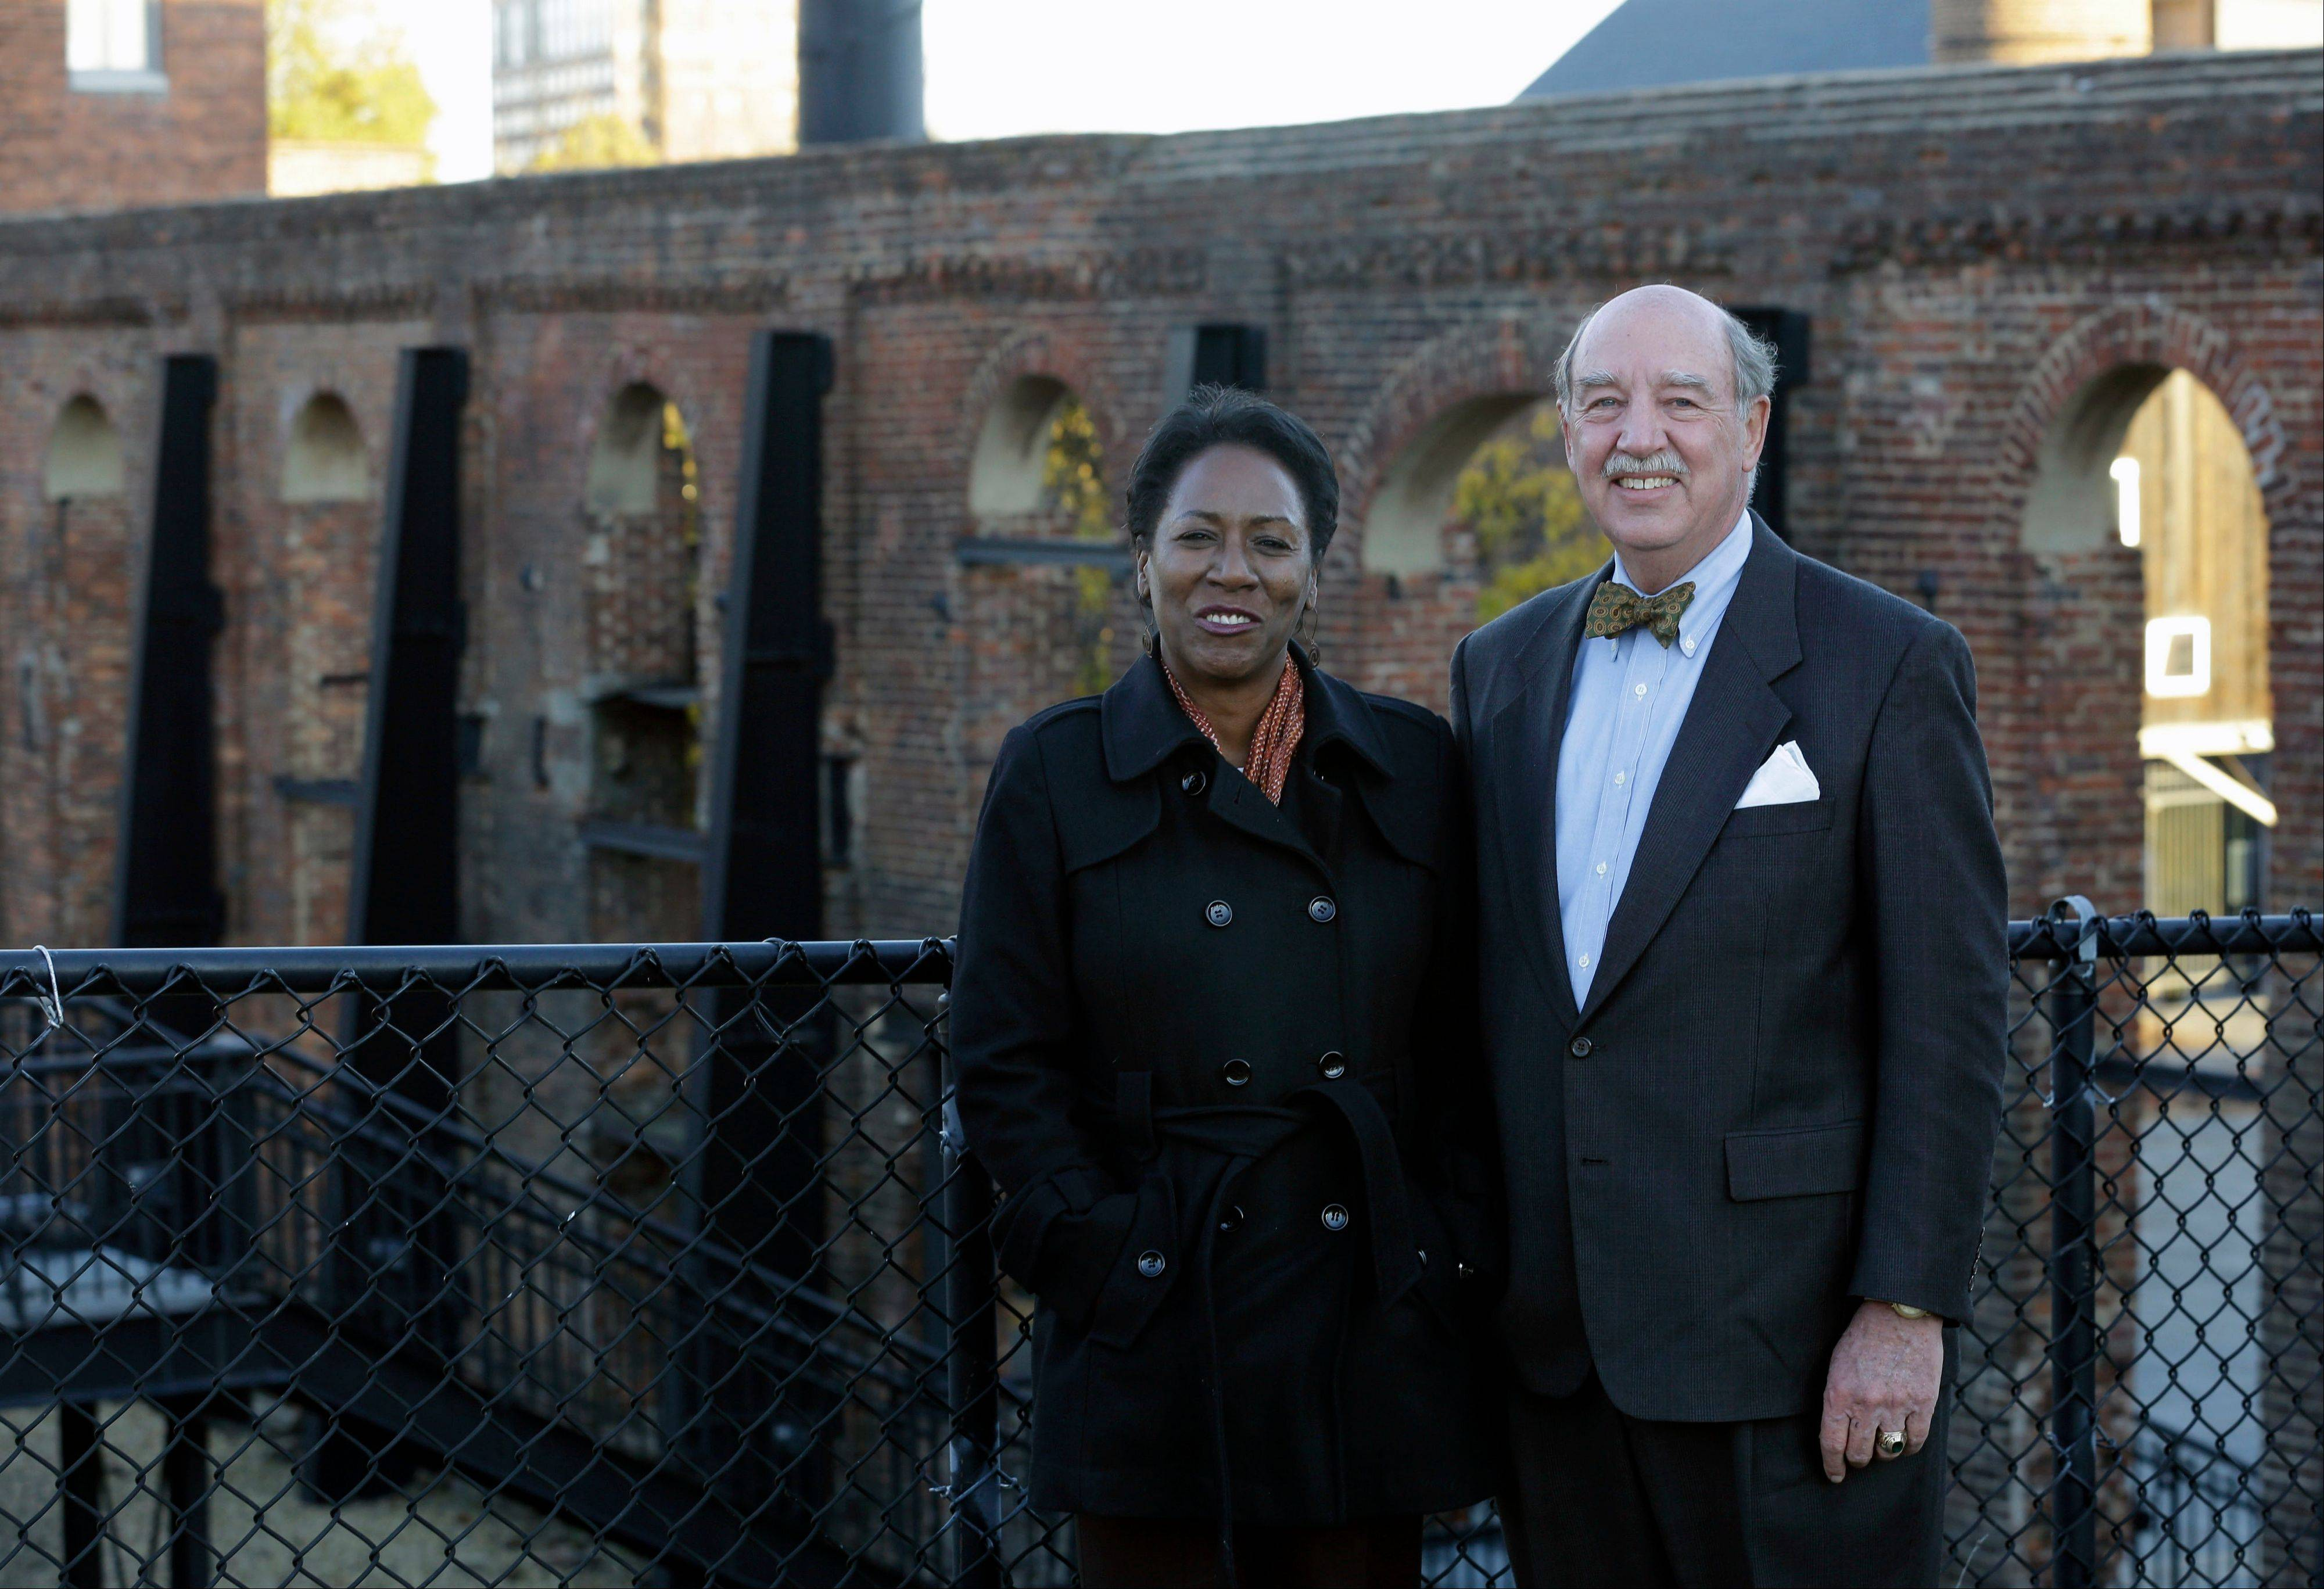 Christy Coleman, left, director of the American Civil War Center at Tredegar Iron Works, left, and Waite Rawls of the Museum of the Confederacy pose in front of the ruins of the old Tredegar Iron Works in Richmond, Va., Wednesday.